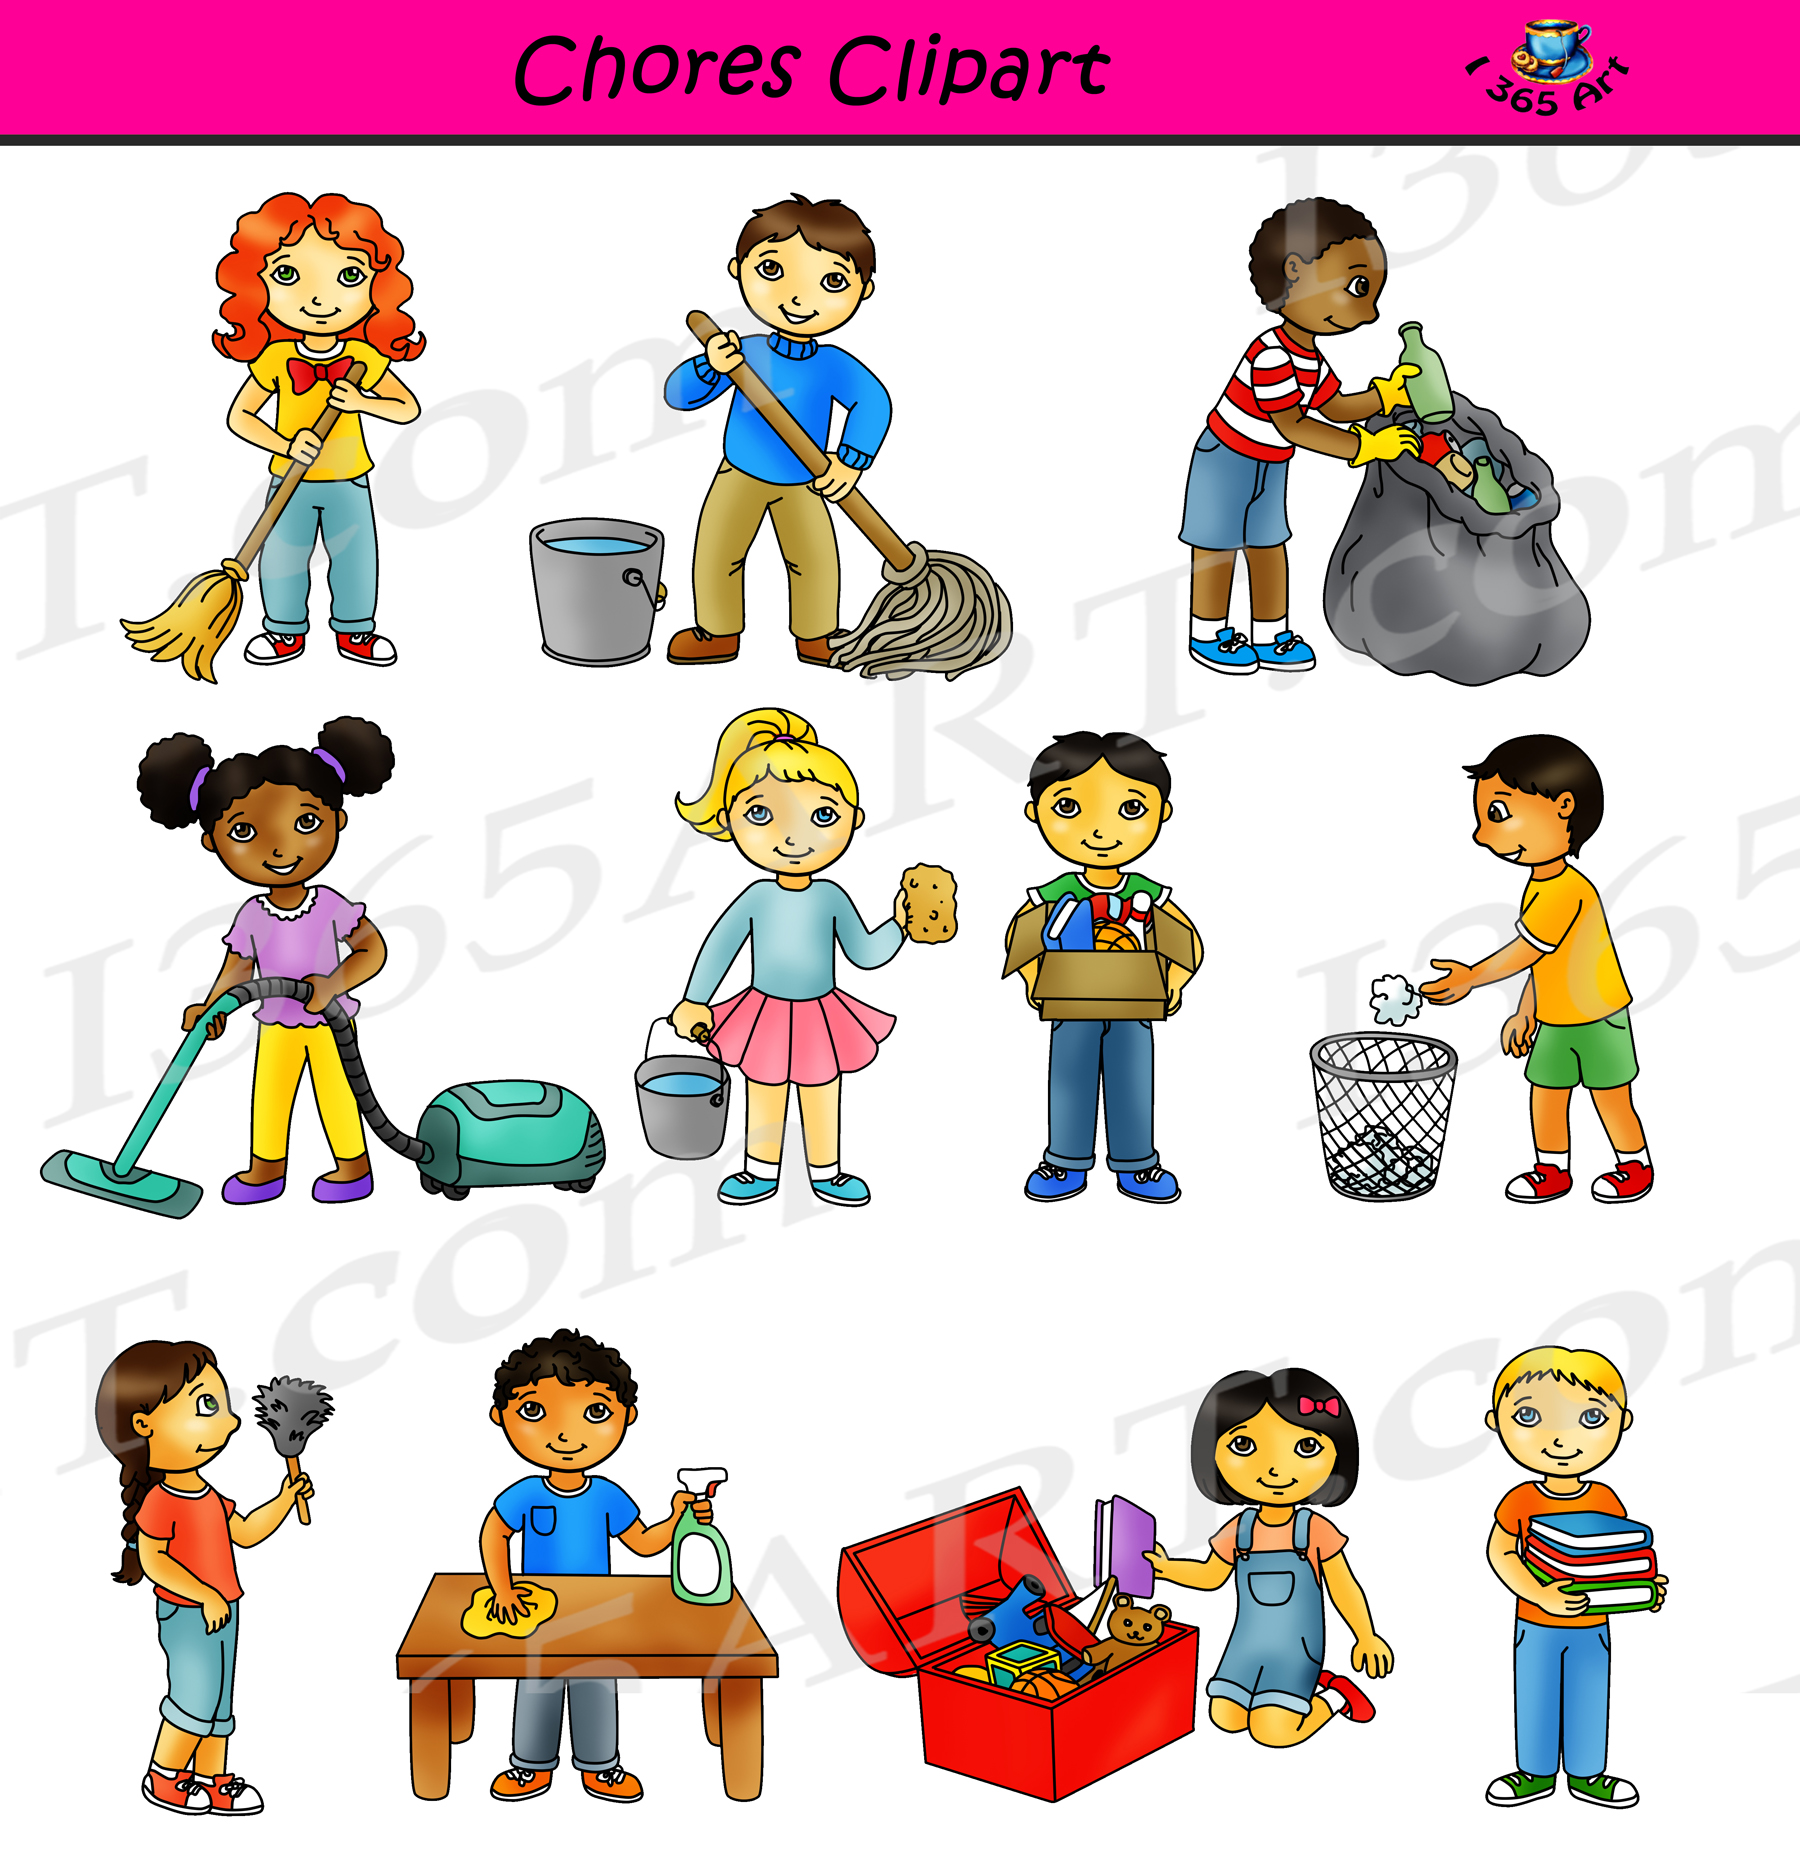 Clipart someone doing chores clip art black and white library Chores Clipart - Classroom Cleaning Commercial Graphics clip art black and white library